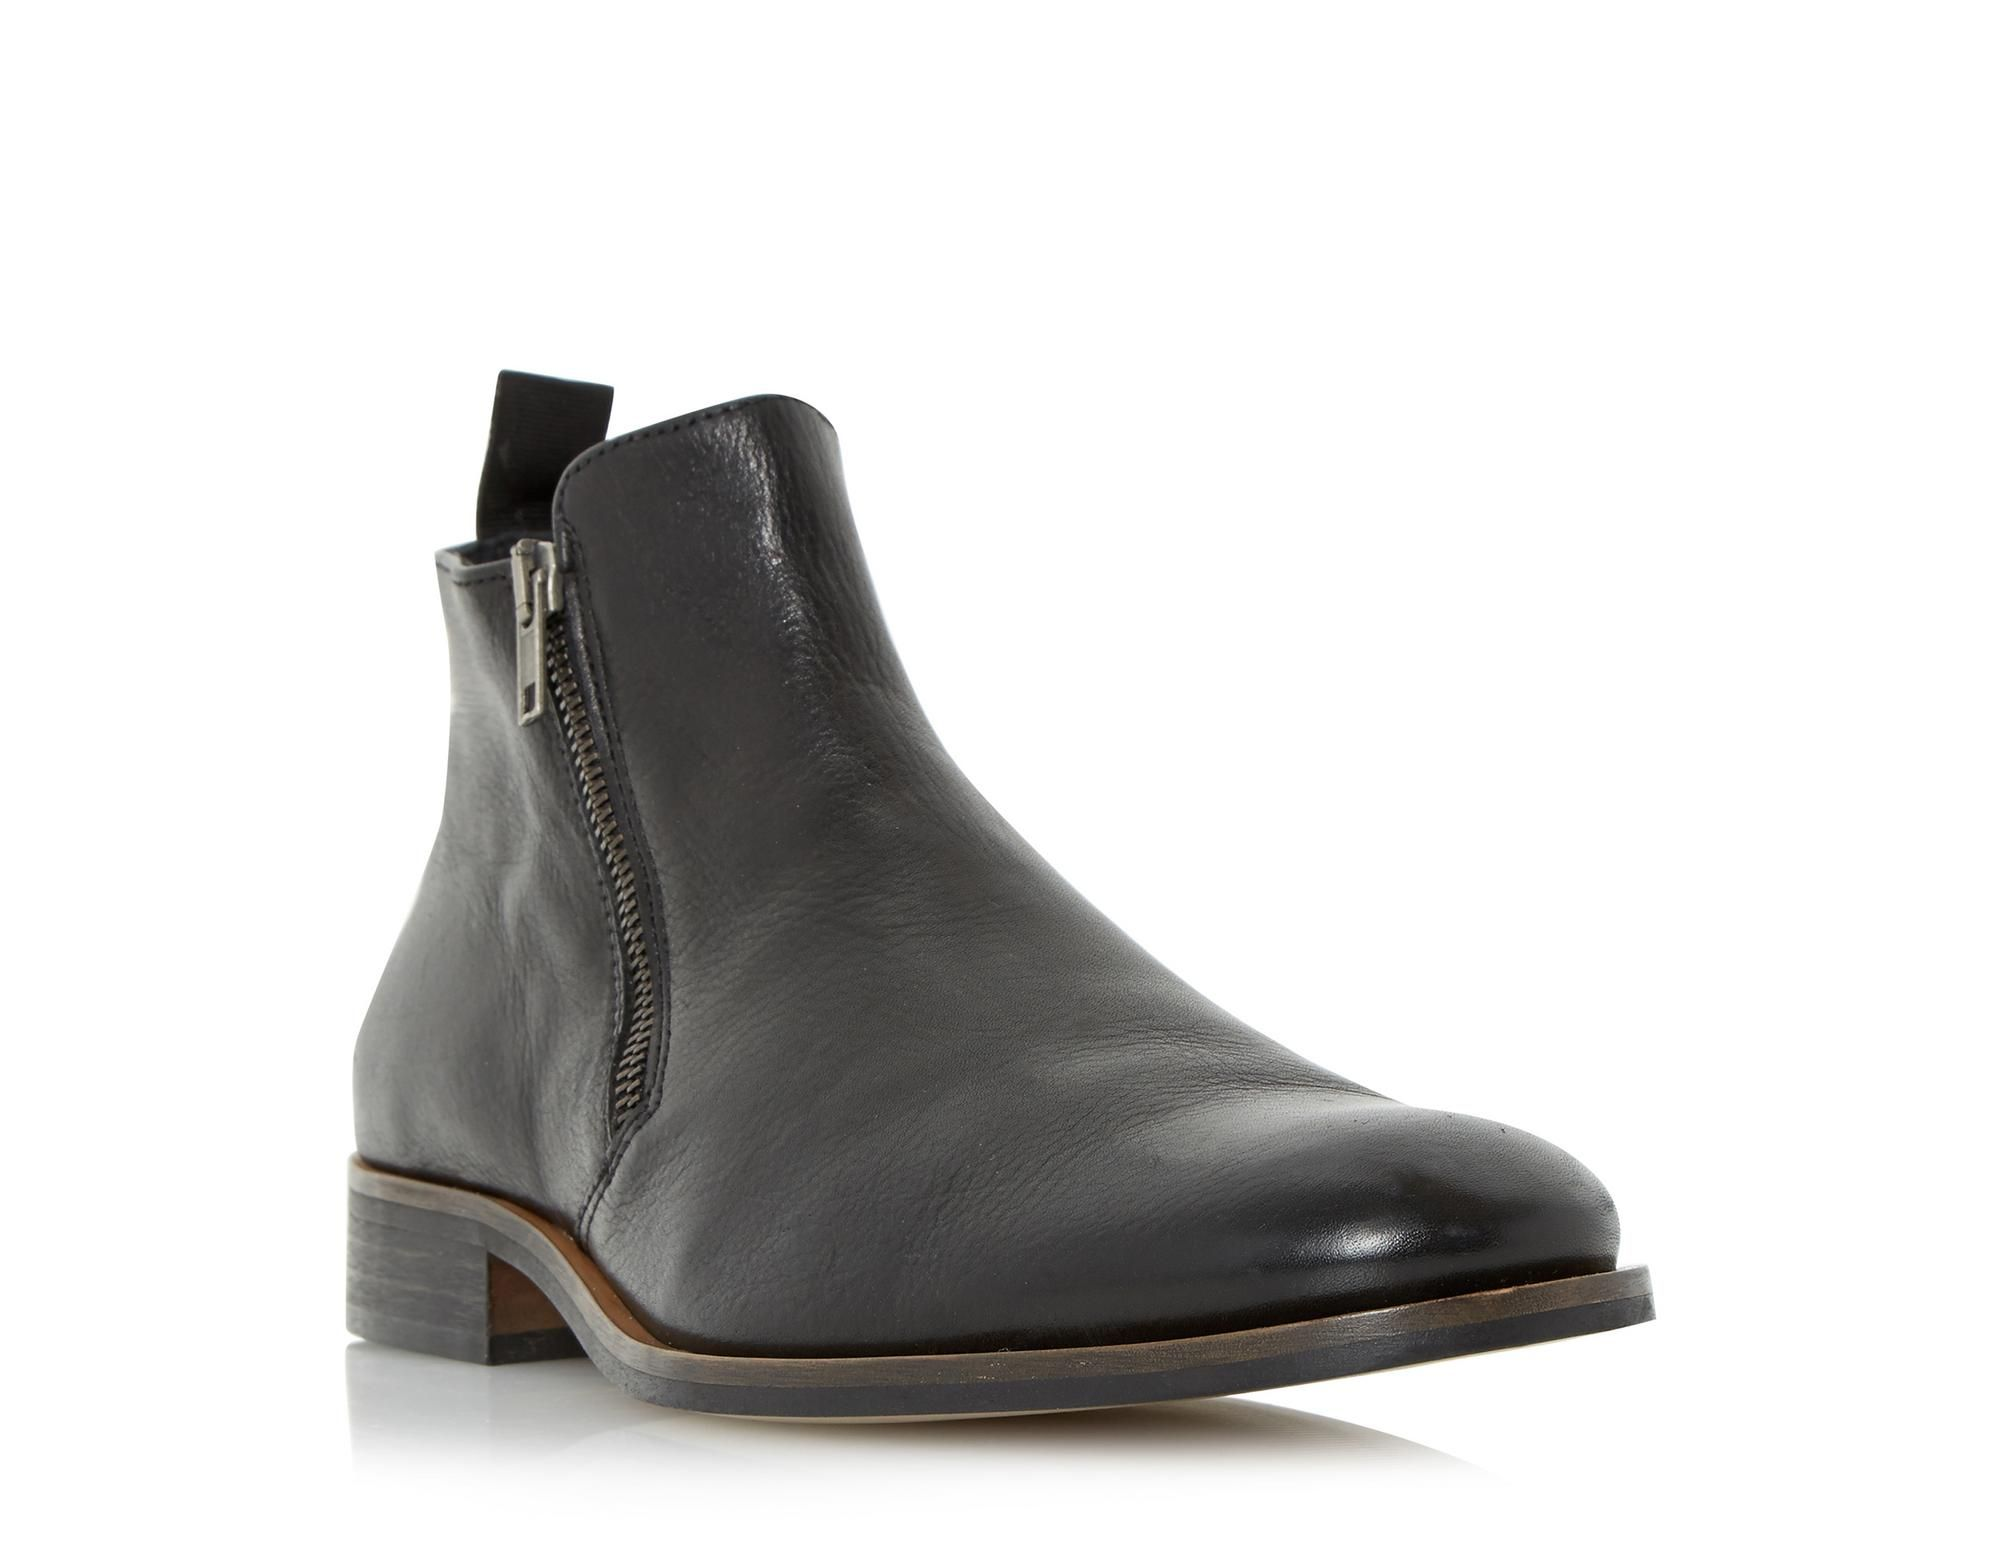 b37b57275 Refresh your off duty look for the new season with this leather boot. It  features